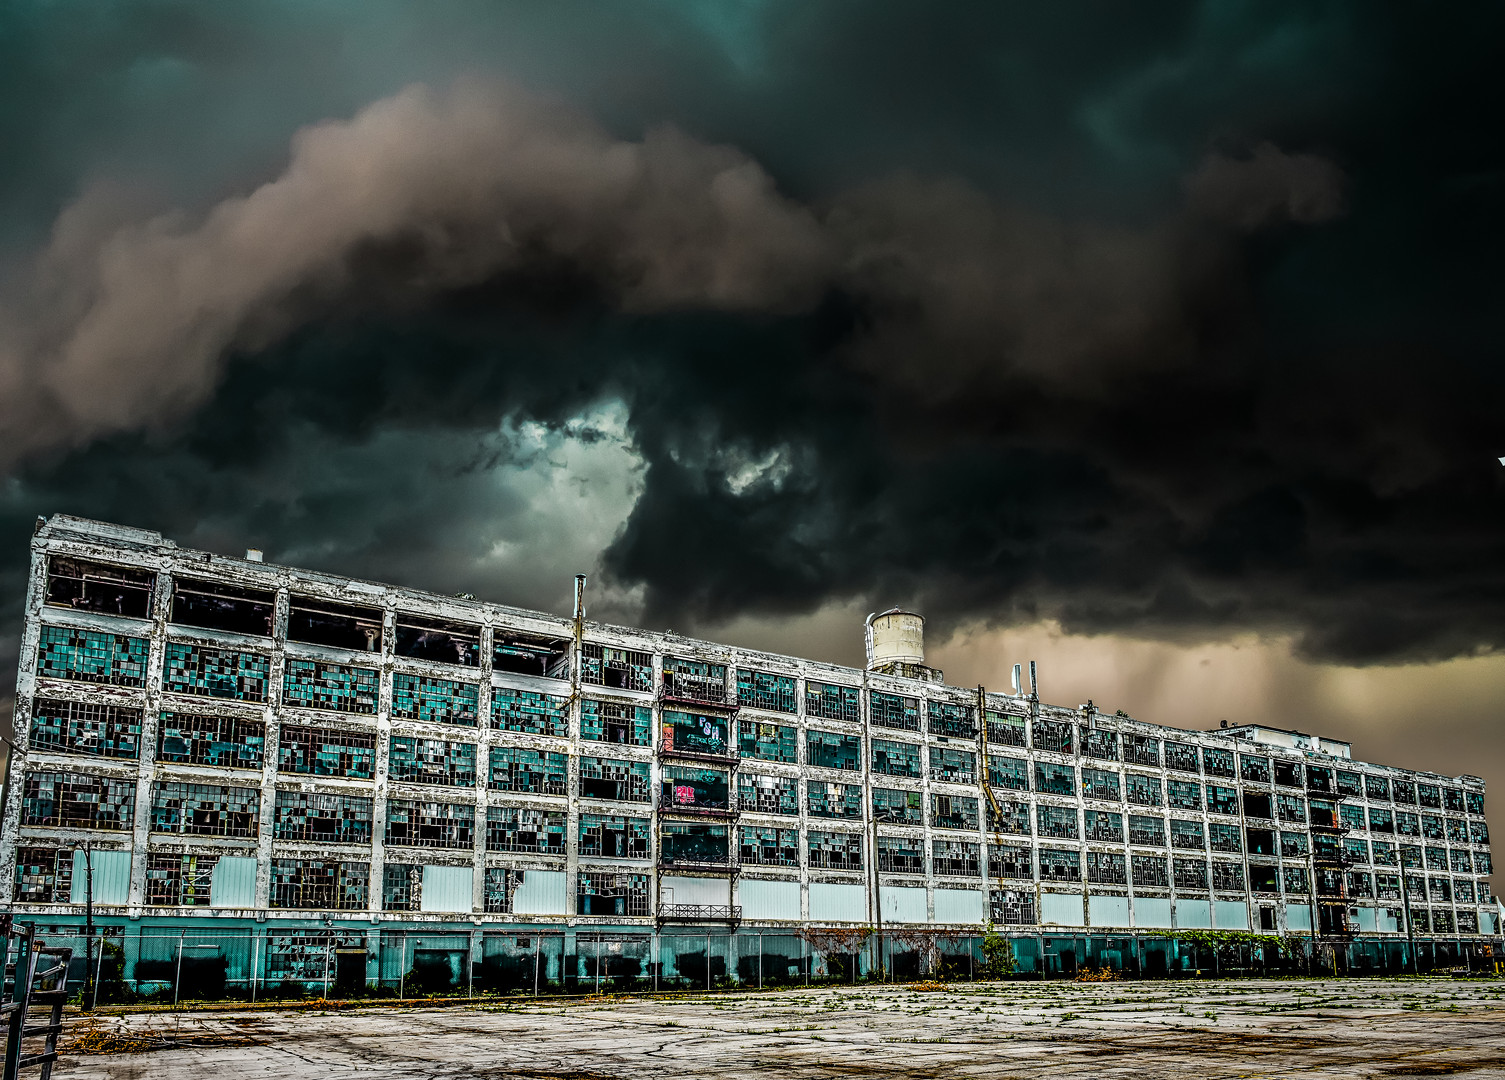 Storms over Packard Plant